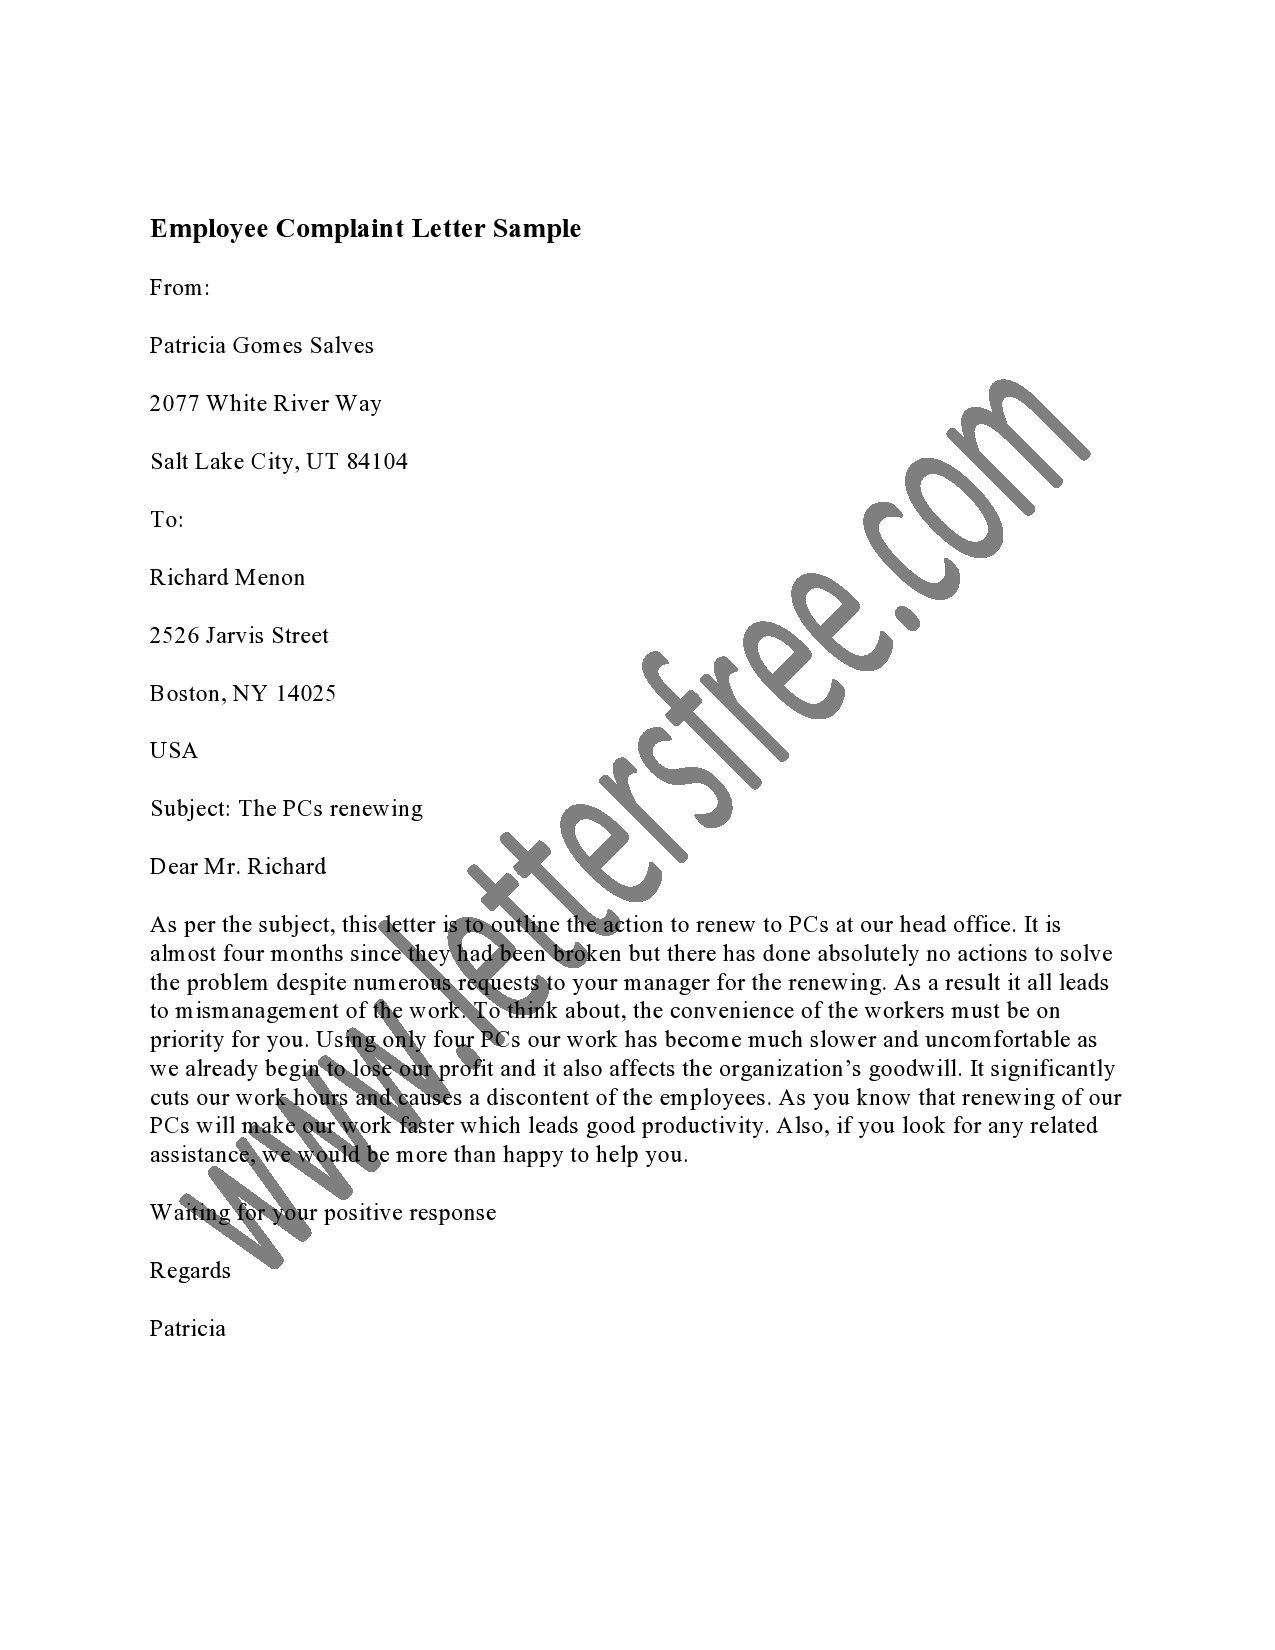 An employee complaint letter is a way for employees to make a formal letter of complaint sample formal letter of complaint template cover letter sample 10 business complaint letter templates free sample example aljukfo Images